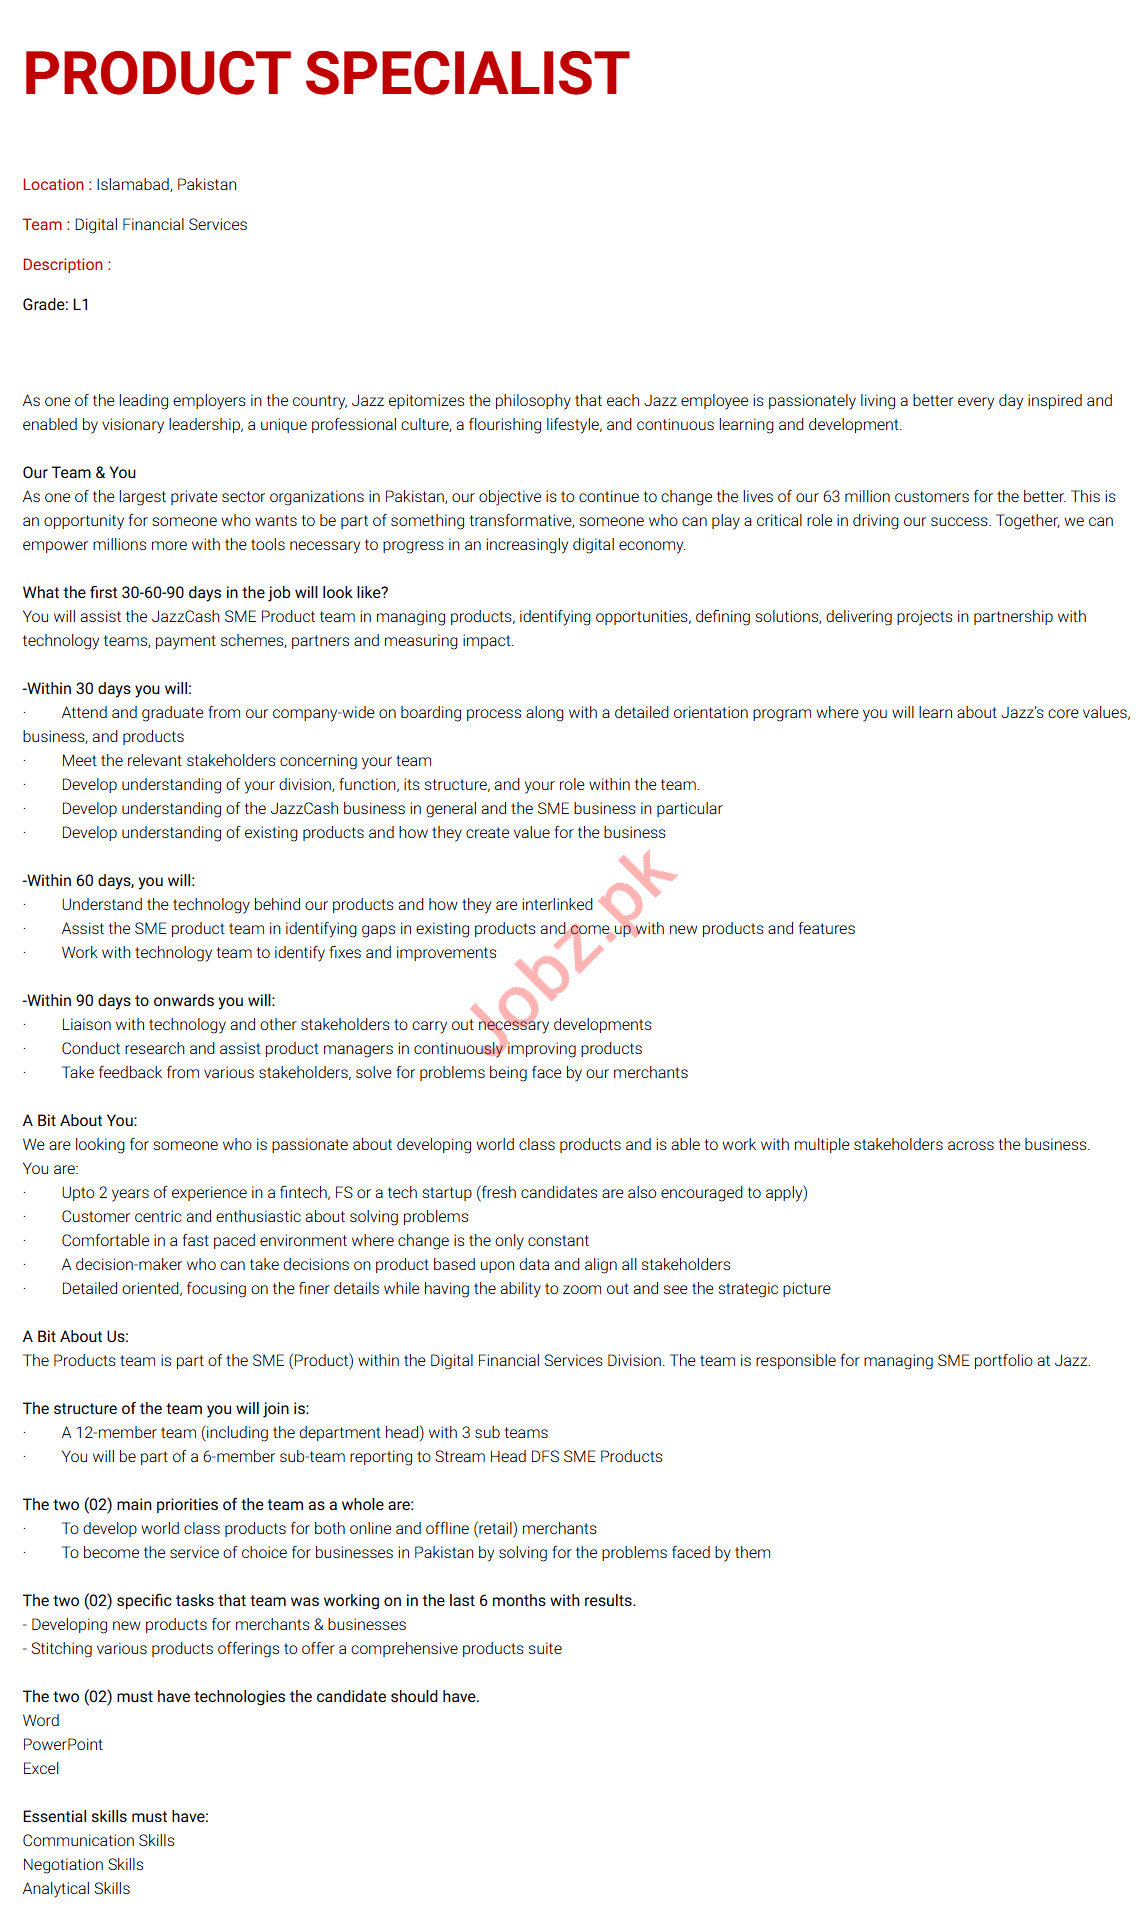 Jazz Telecom Islamabad Jobs 2020 for Product Specialist